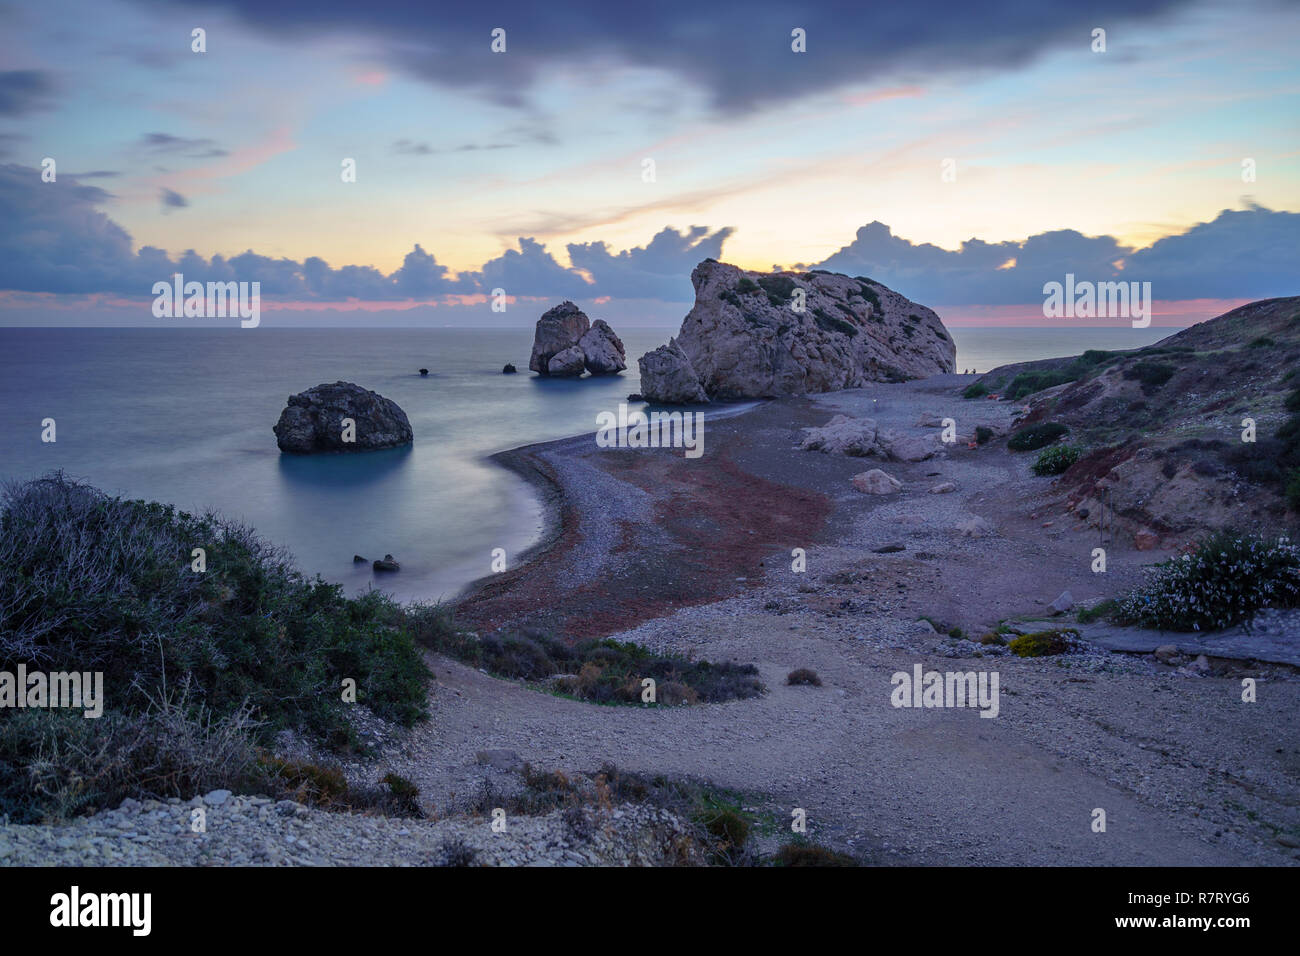 Longtime Exposure Aphrodite's Rock at blue Hour - Stock Image